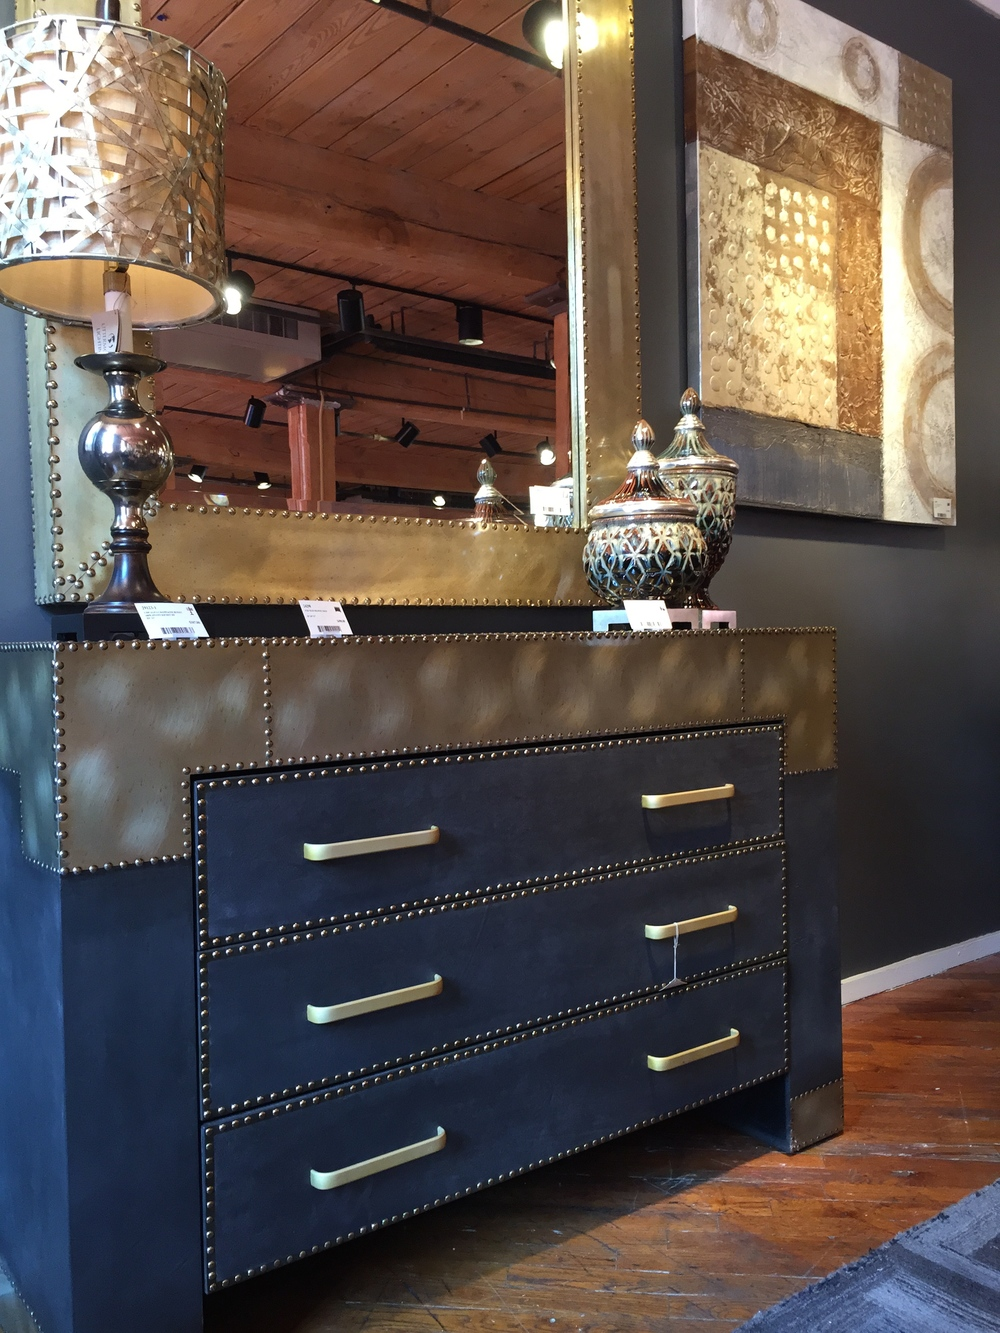 LOVE LOVE LOVE This chest of drawers!